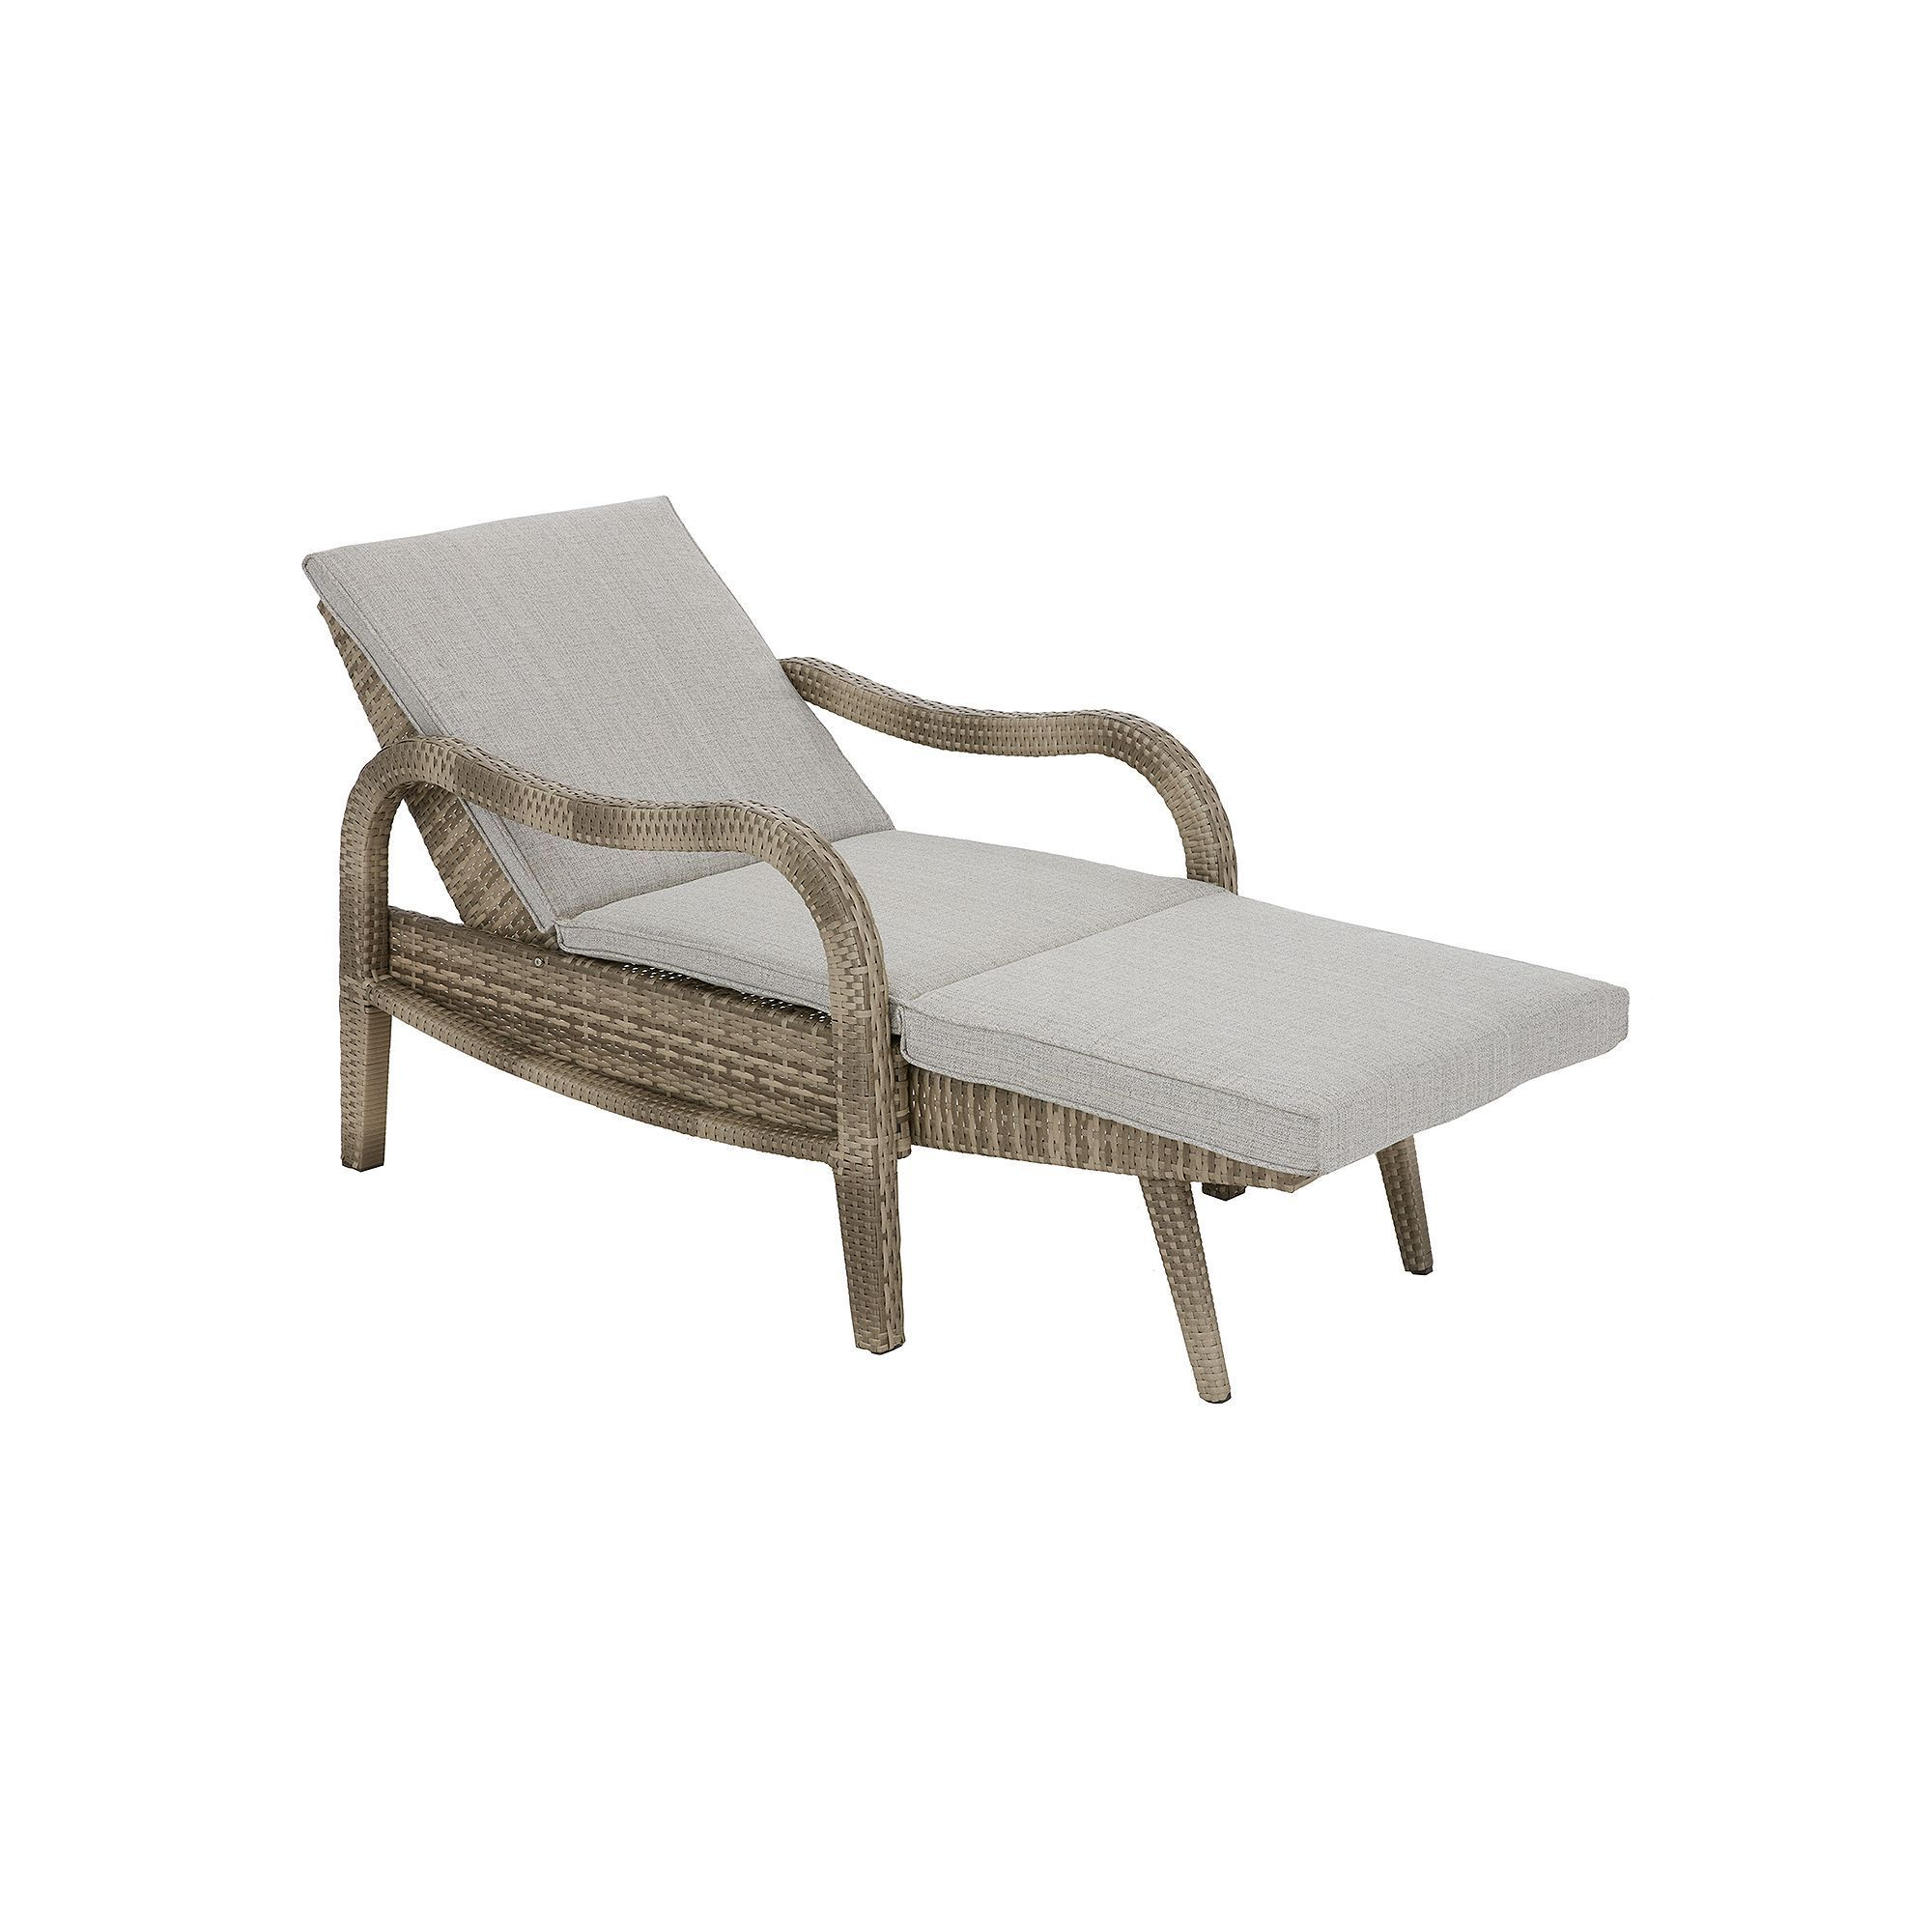 Cool Madison Park Camden Adjustable Patio Chaise Lounge Chair Beatyapartments Chair Design Images Beatyapartmentscom